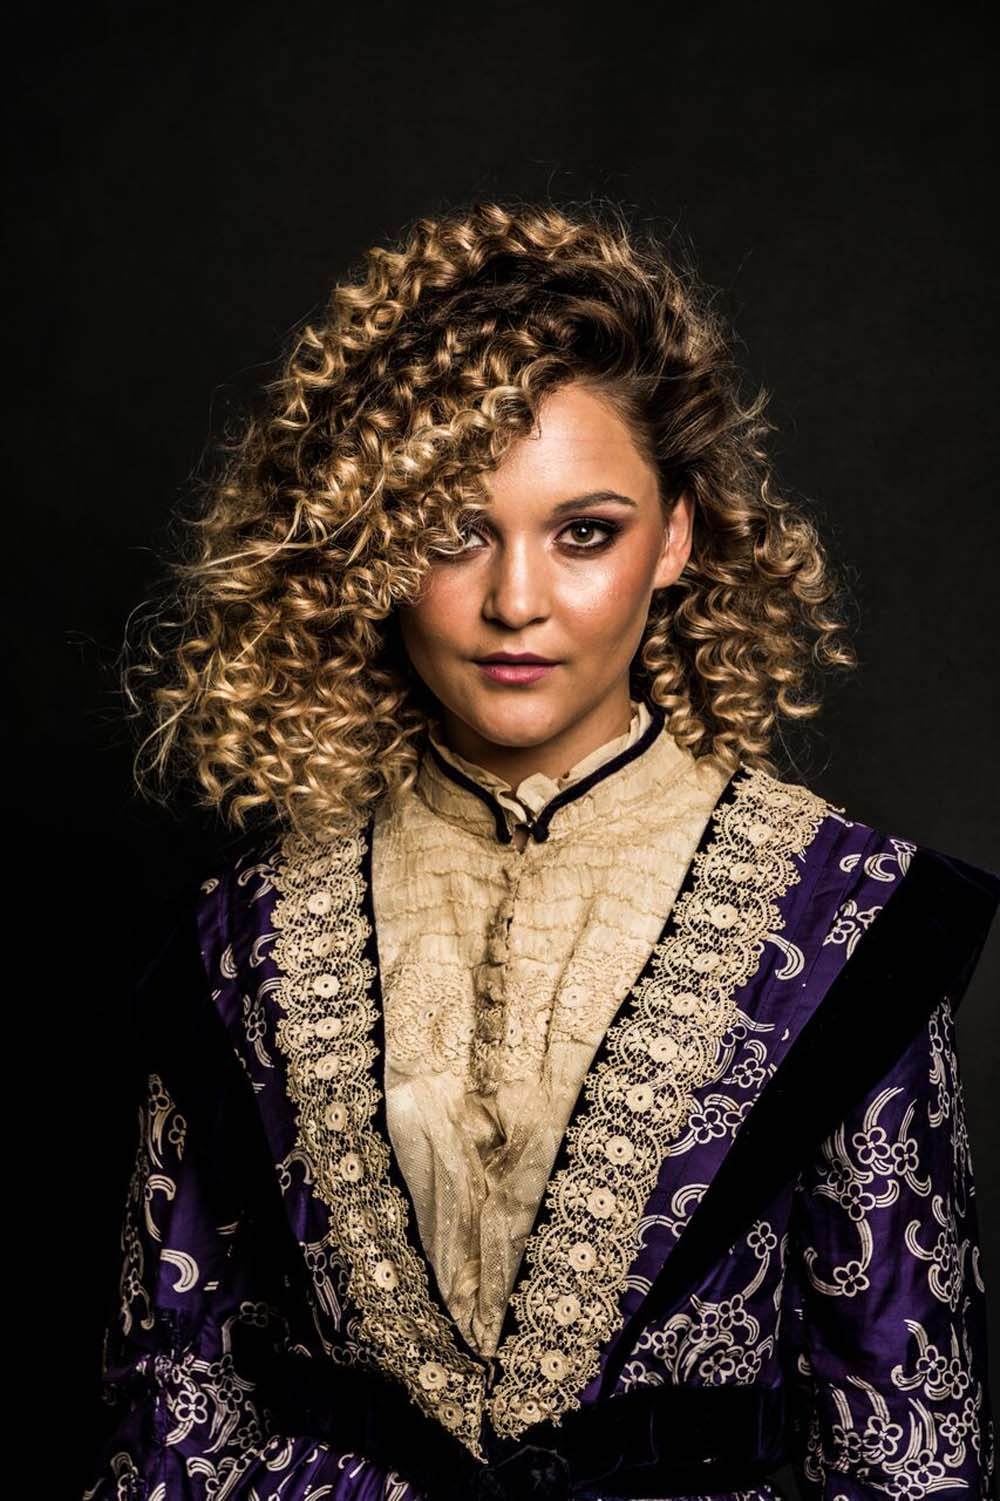 photo of a model with curly hair wearing a Victorian dress